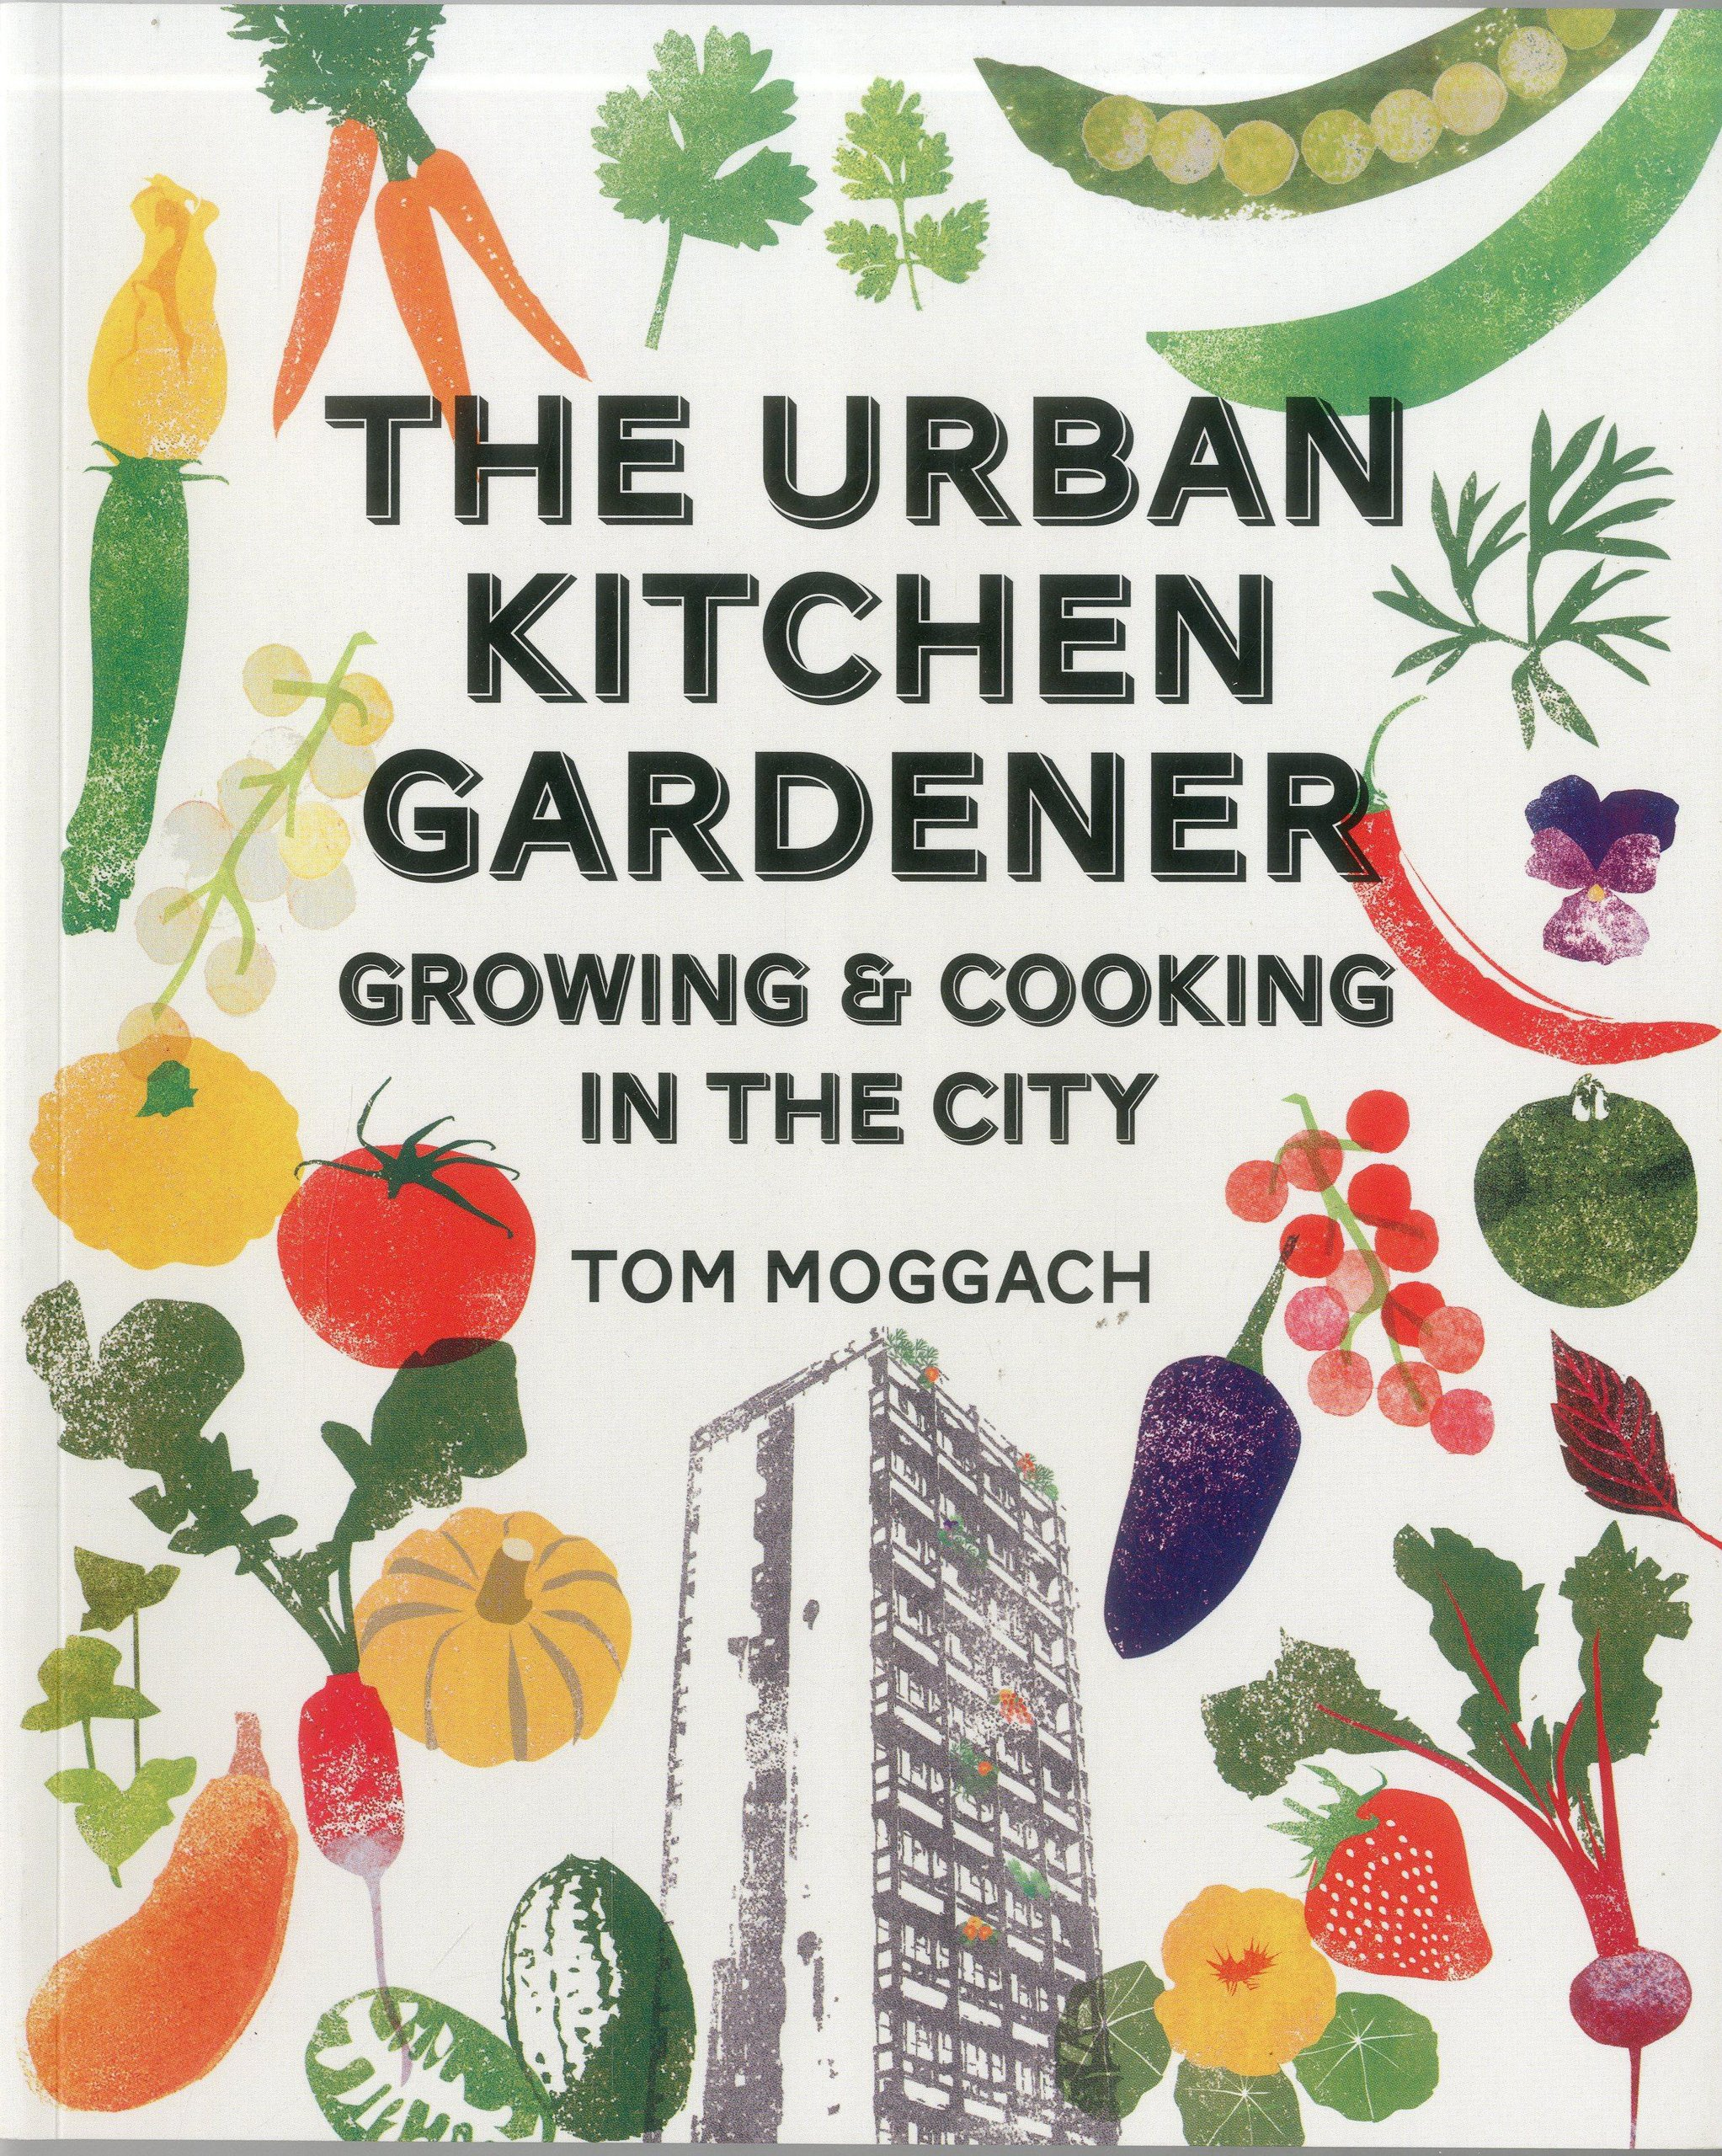 Kitchen Gardener Urban Kitchen Garden Grow And Cook Your Own Food In The City Tom